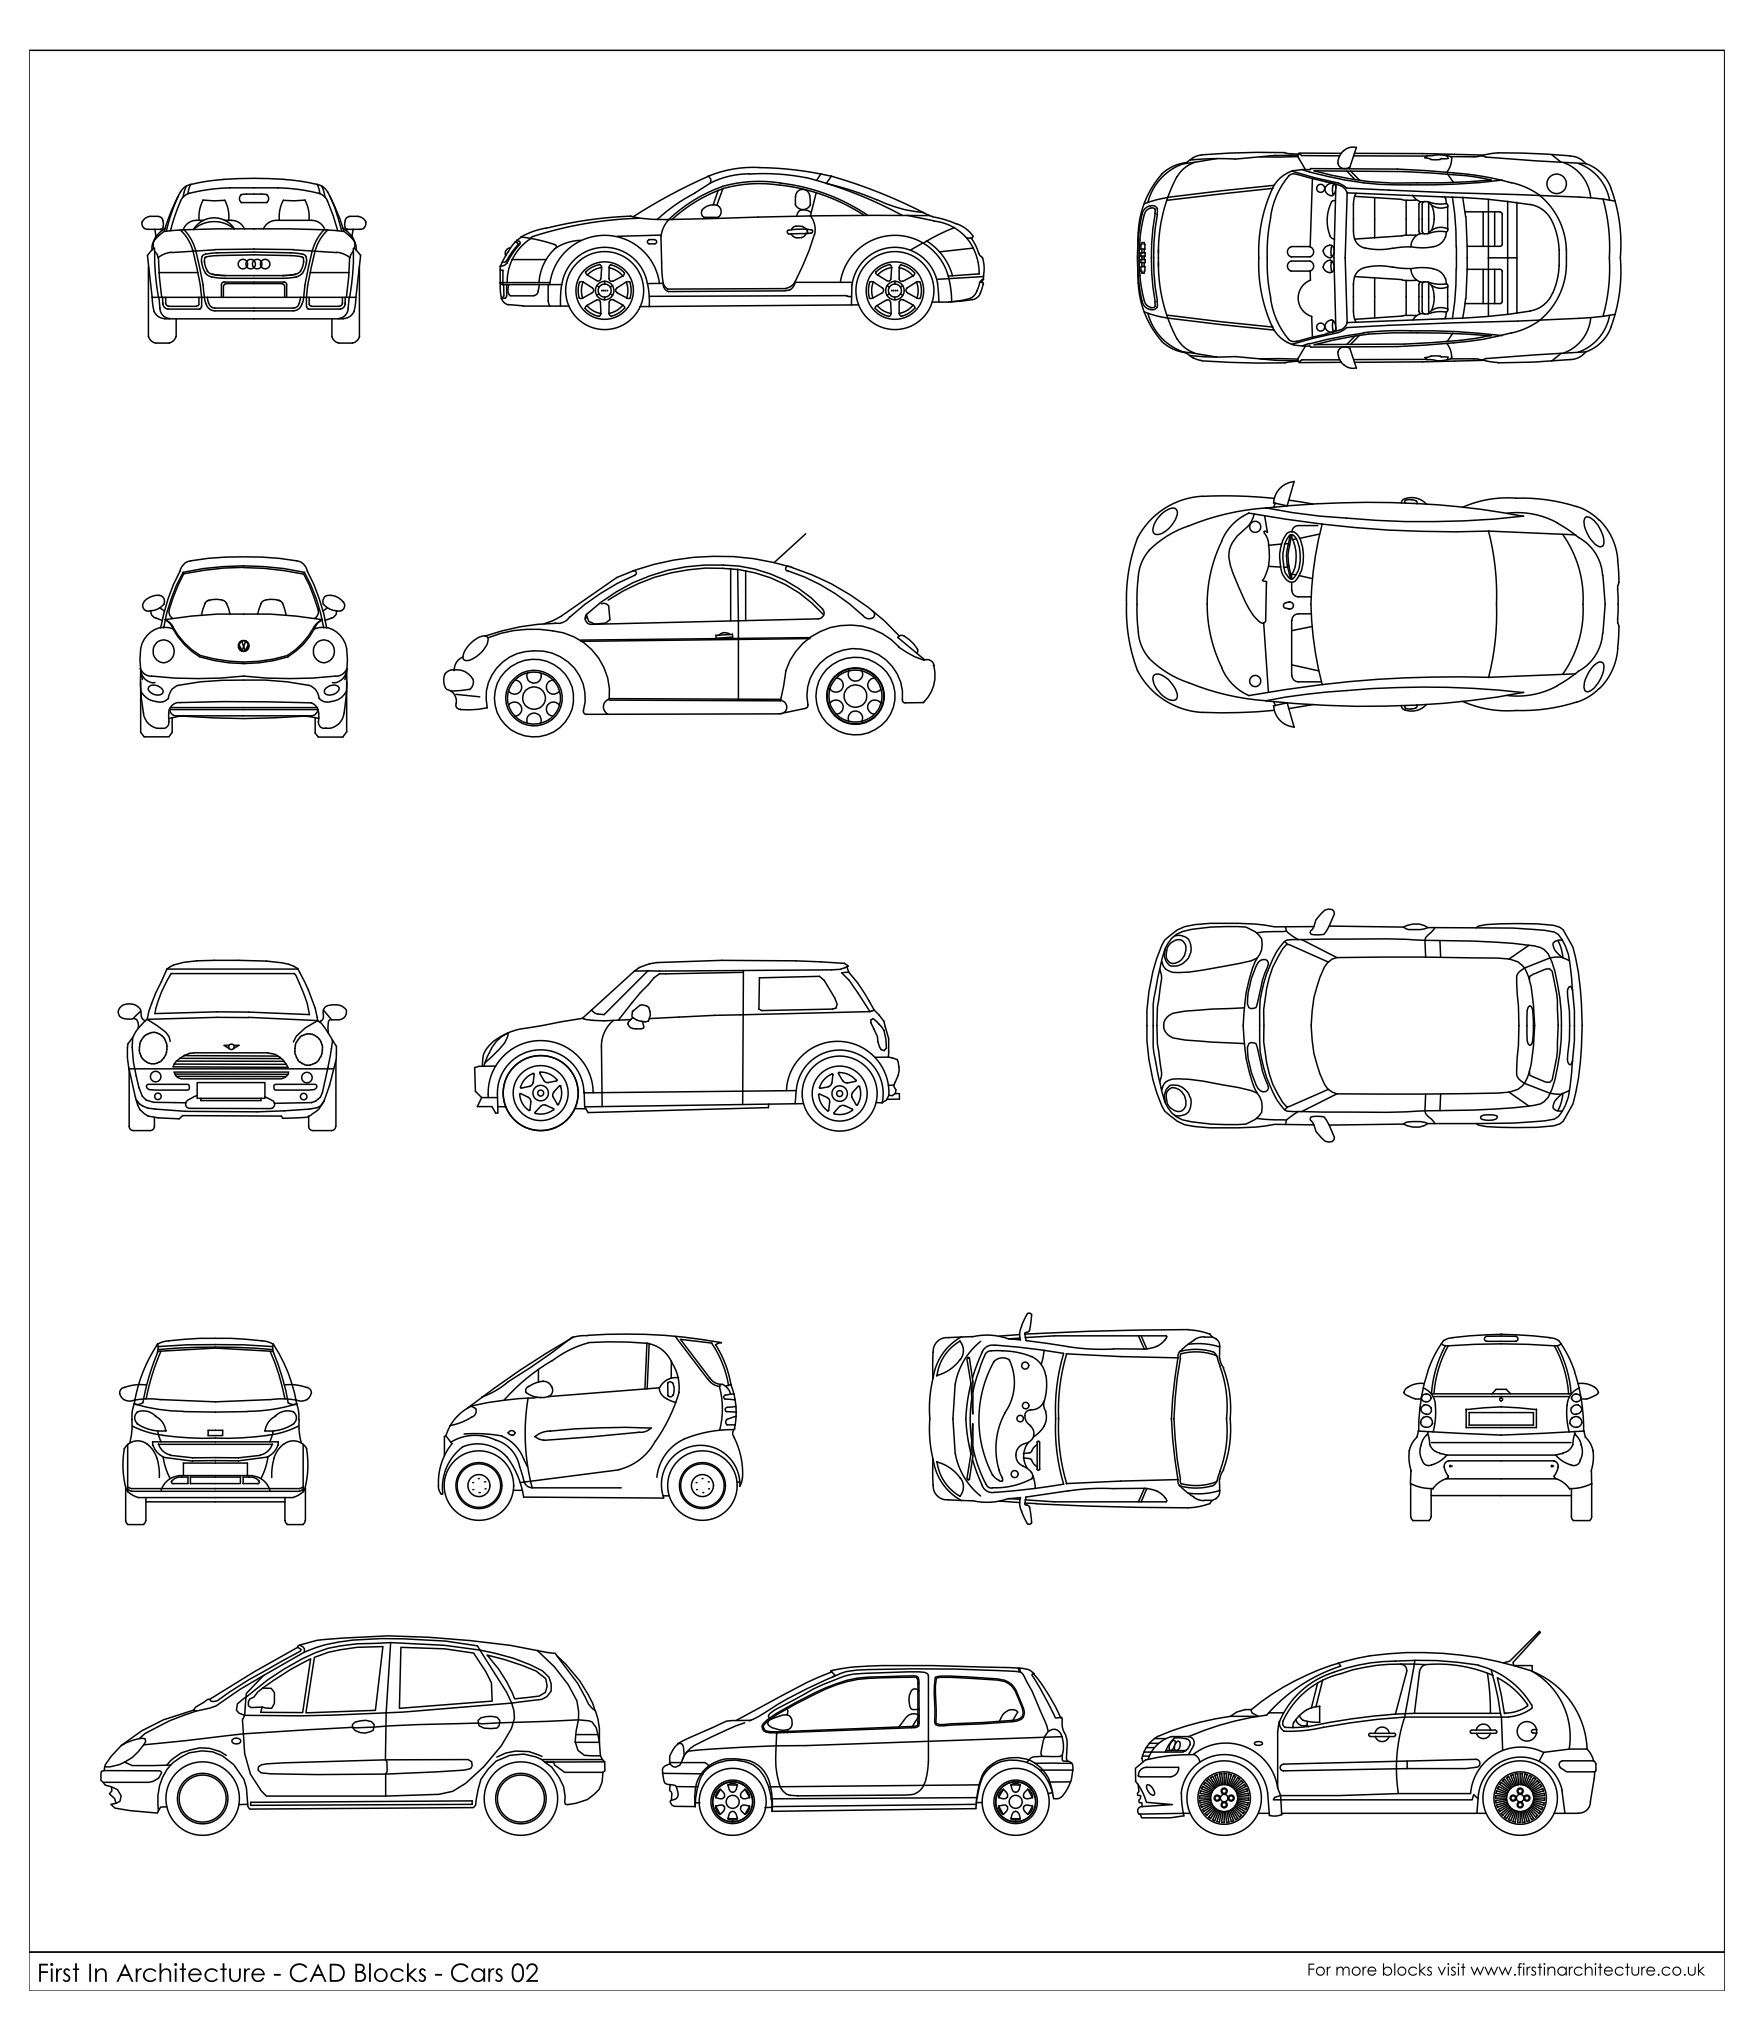 Cad blocks cars 02 first in architecture 2d for Softplan architectural design software free download